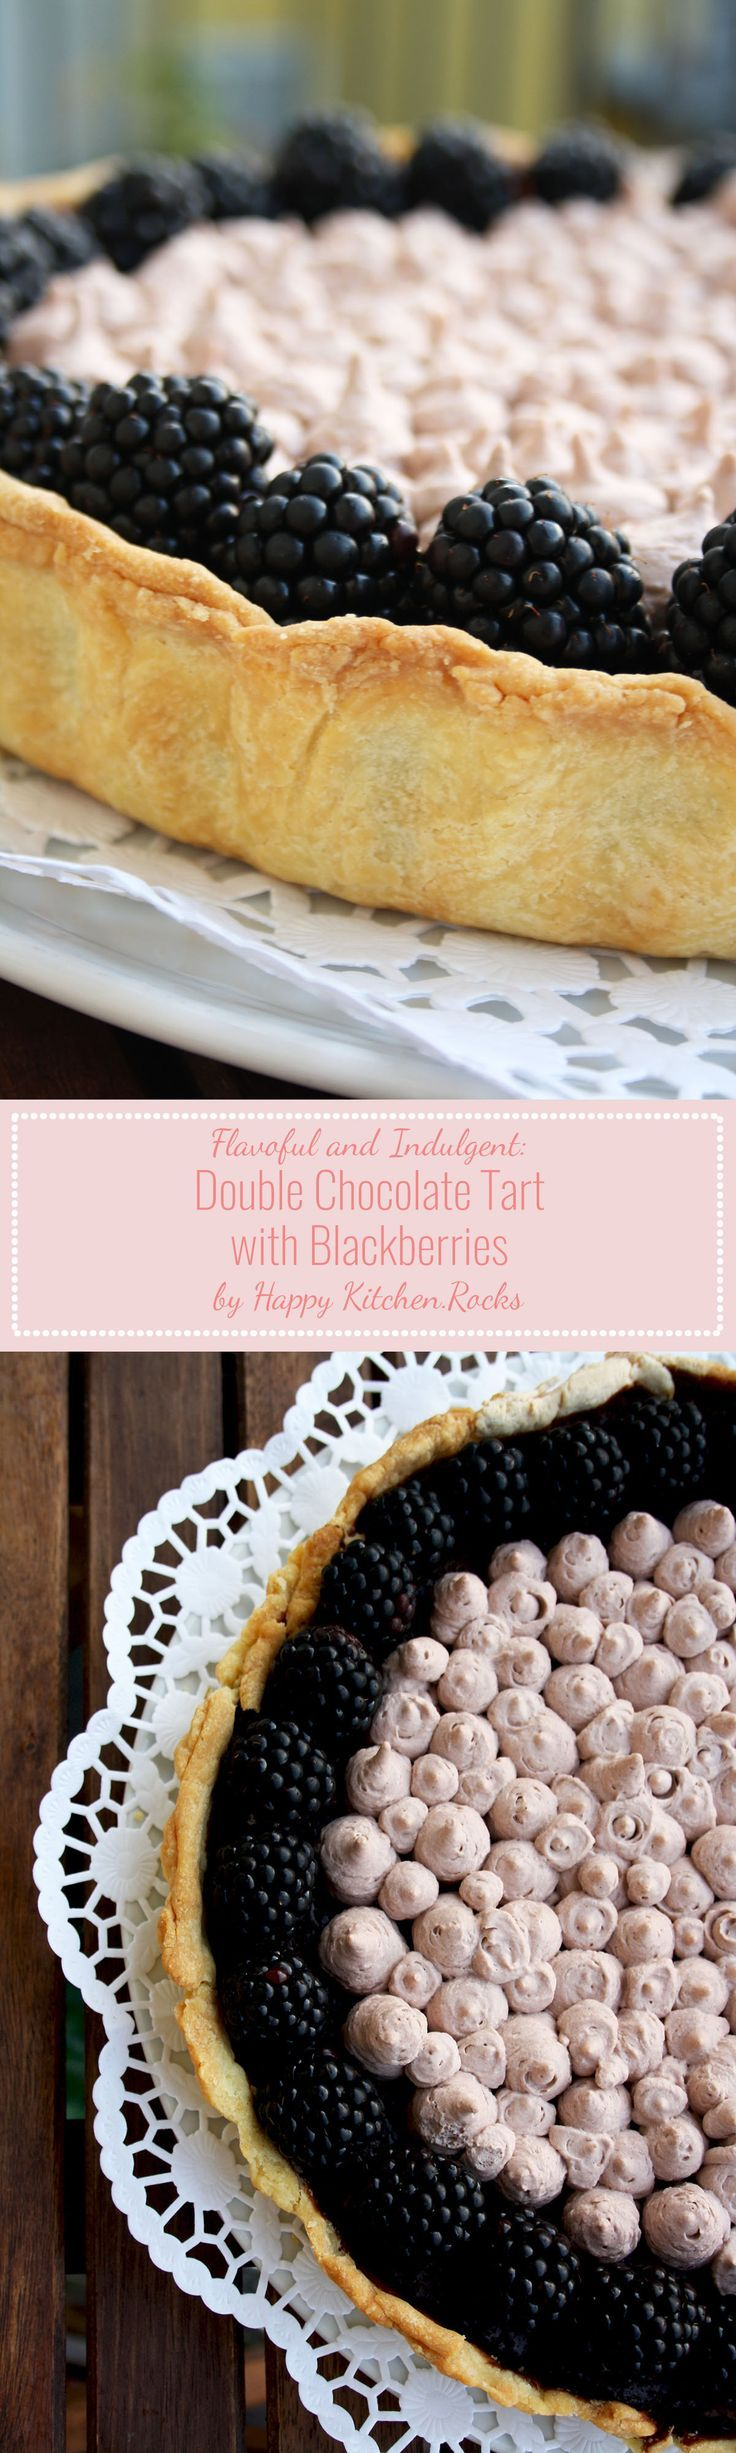 Double Chocolate Tart with Blackberries Recipe: extremely rich, flavorful…